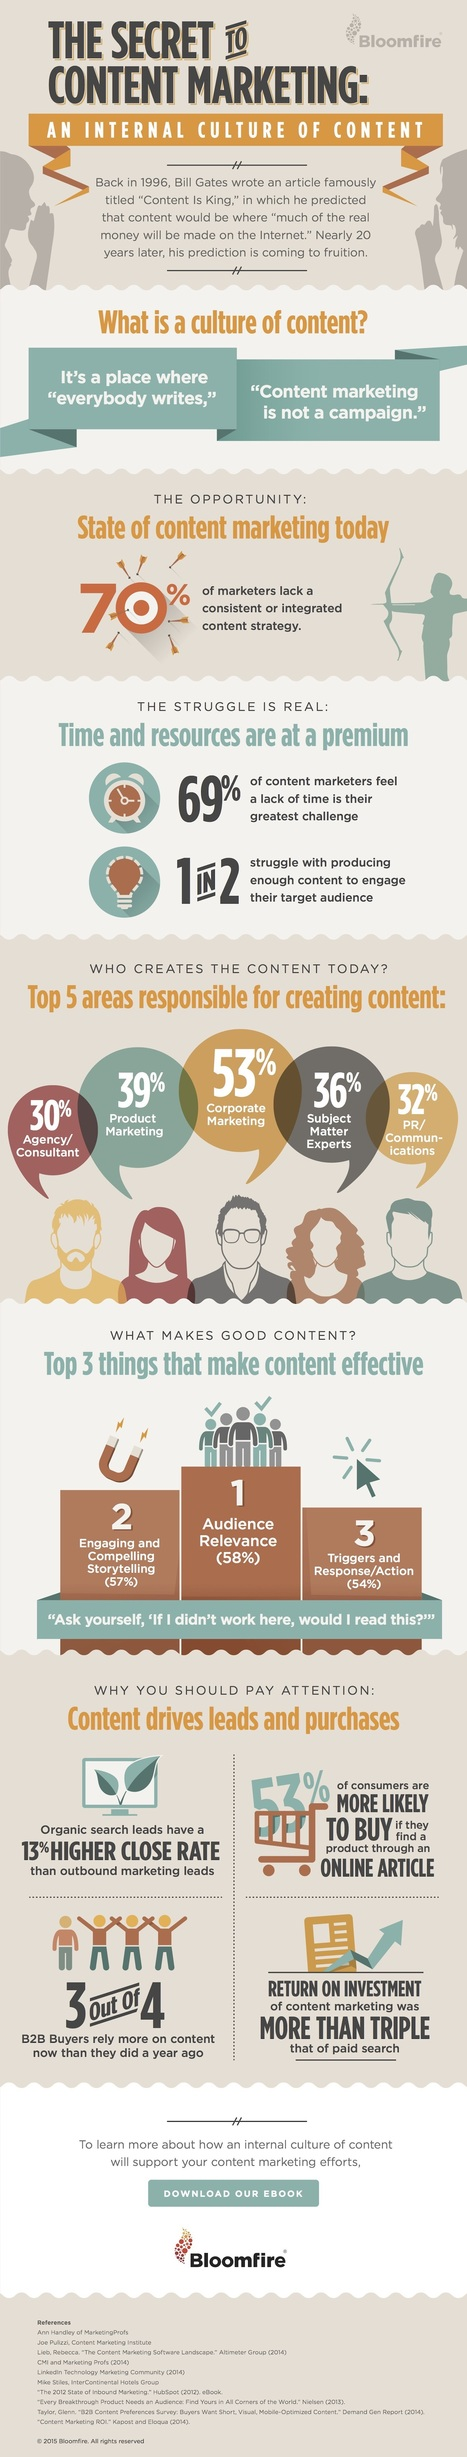 INFOGRAPHIC: The Secret to Content Marketing | Surviving Social Chaos | Scoop.it